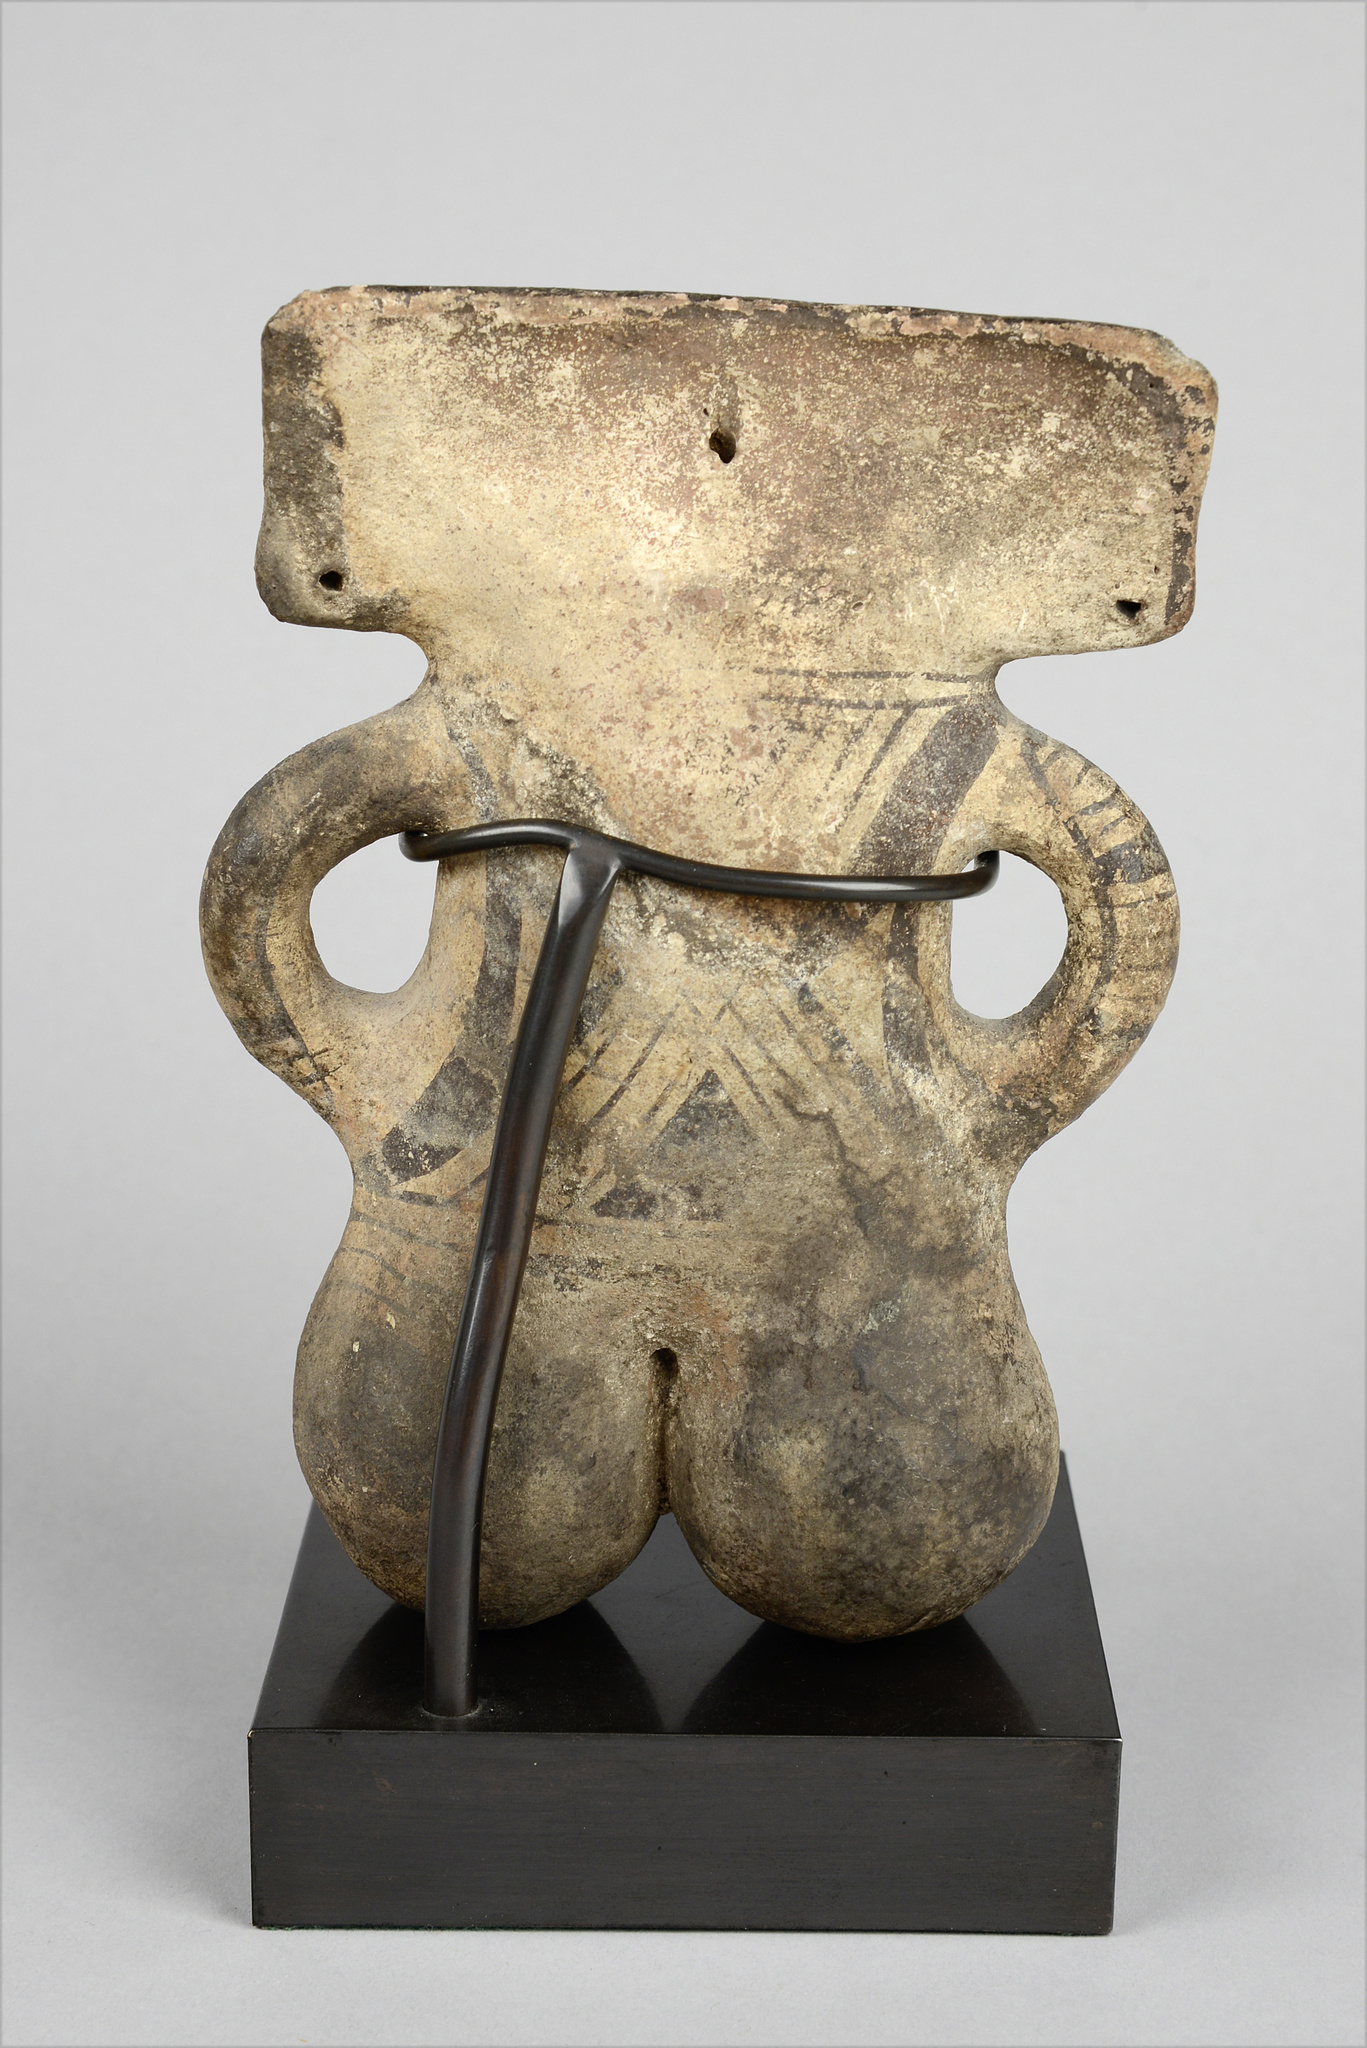 Seated androgynous figure, ca. 1000-1500 AD